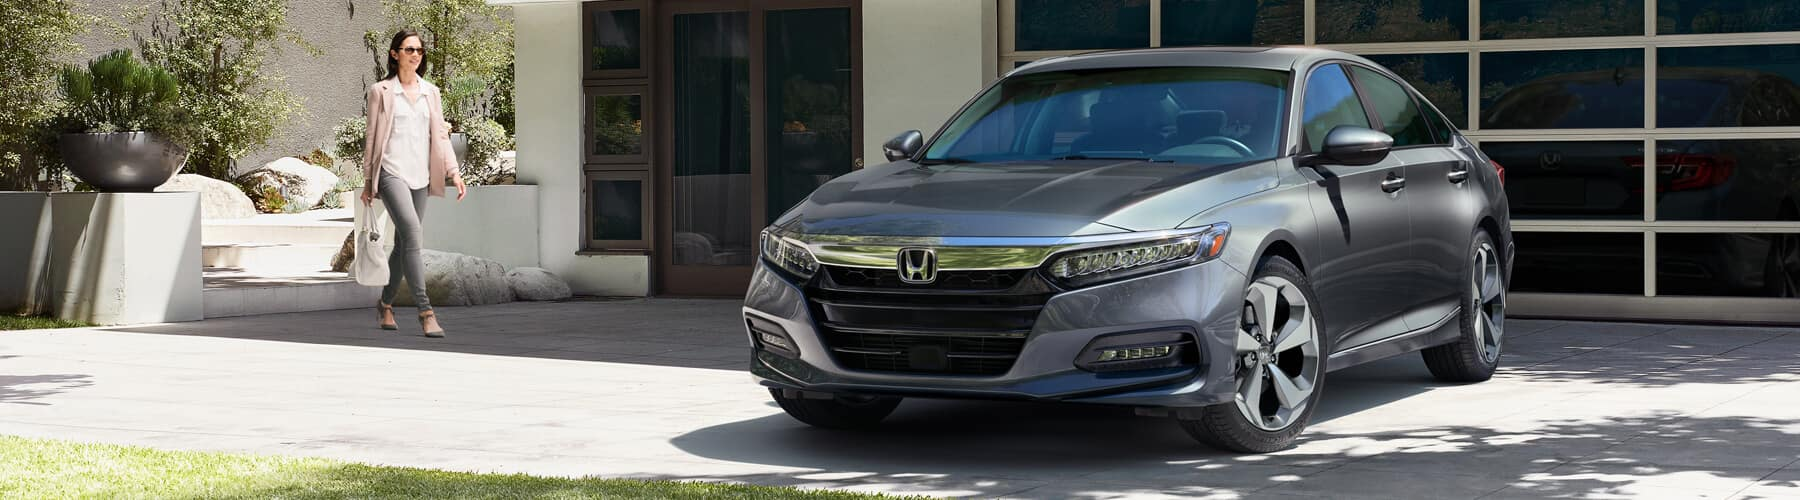 2020 Honda Accord Sedan Slider